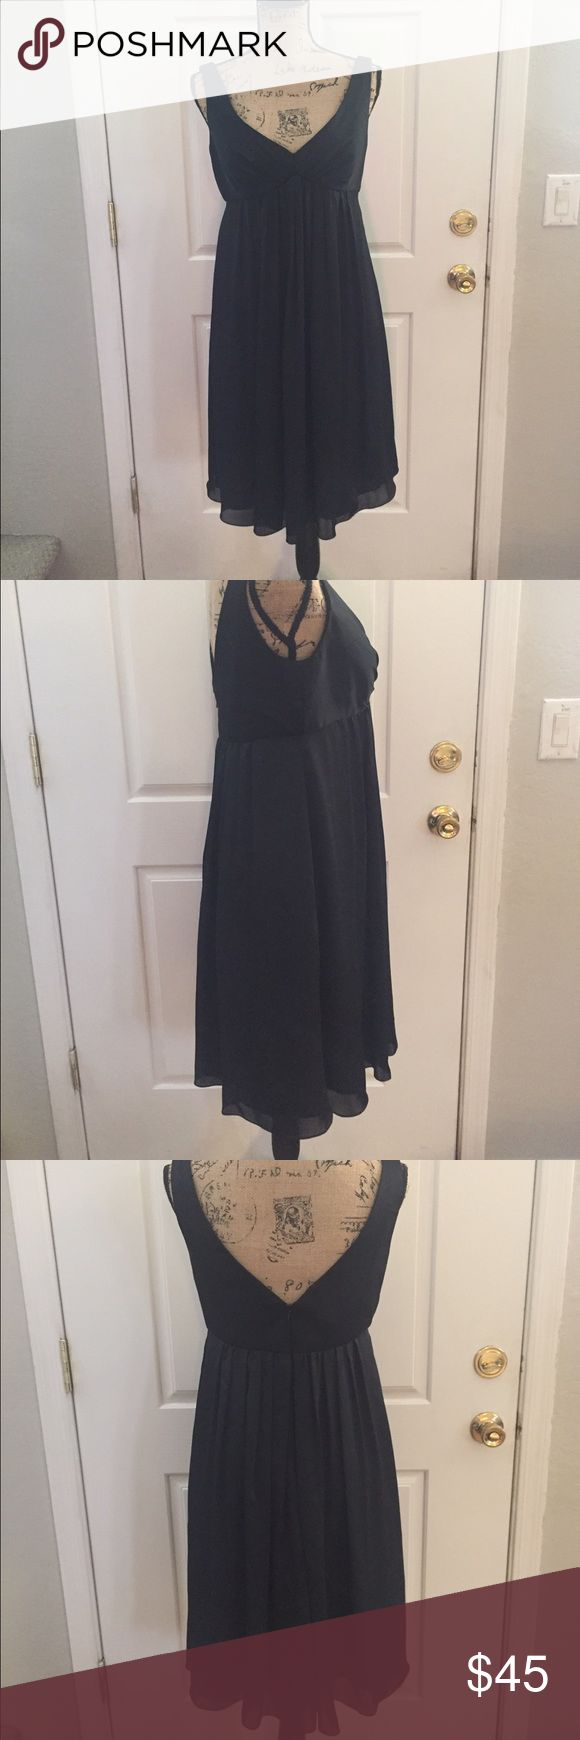 Priscilla of Boston Black size 12 Like New! Priscilla of Boston formal sleeveless  A-line gown. Very beautiful sheer over lay, gathering v-neckline. Measurements flat, LT: 37 1/2in Bust: 17in, 1in strap. Comes from a pet and smoke free home. I'll be happy to answer any questions you may have! 😊 Priscilla of Boston Dresses Midi